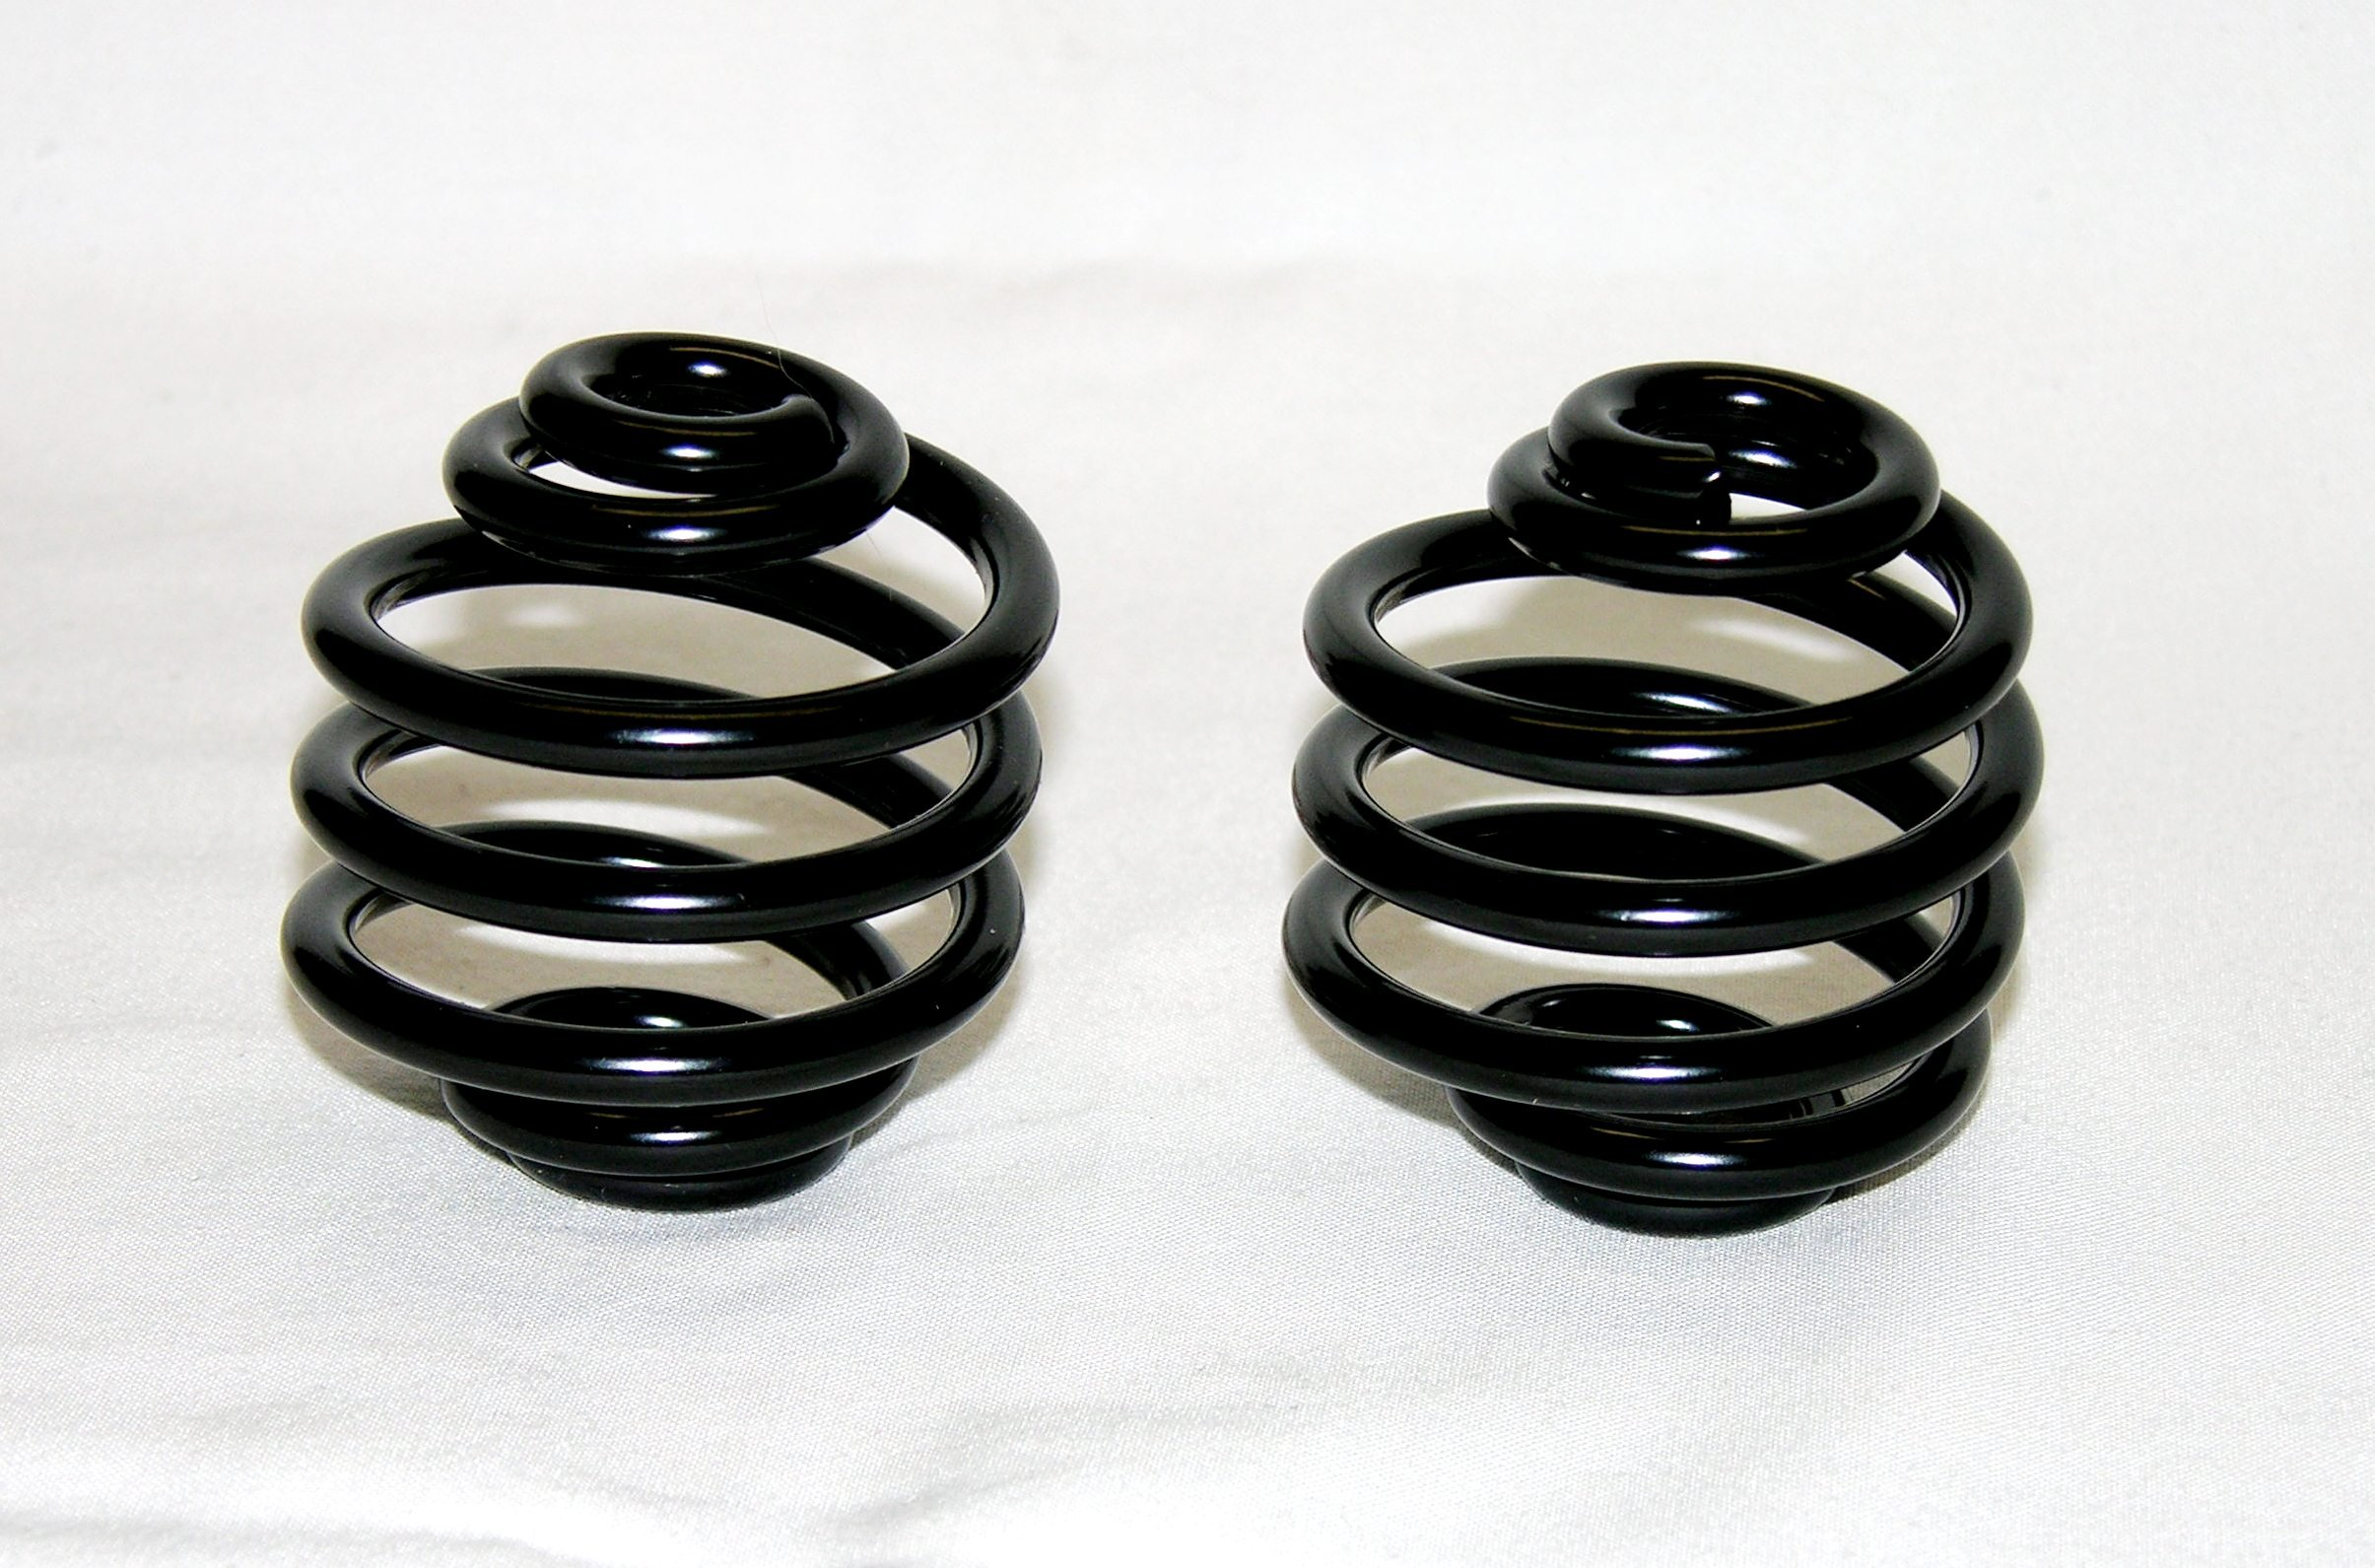 Mr Luckys Universal Fit Black Powder Coated 2 inch Solo Seat Springs for Harley, Bobber, Vintage, Retro, Custom.